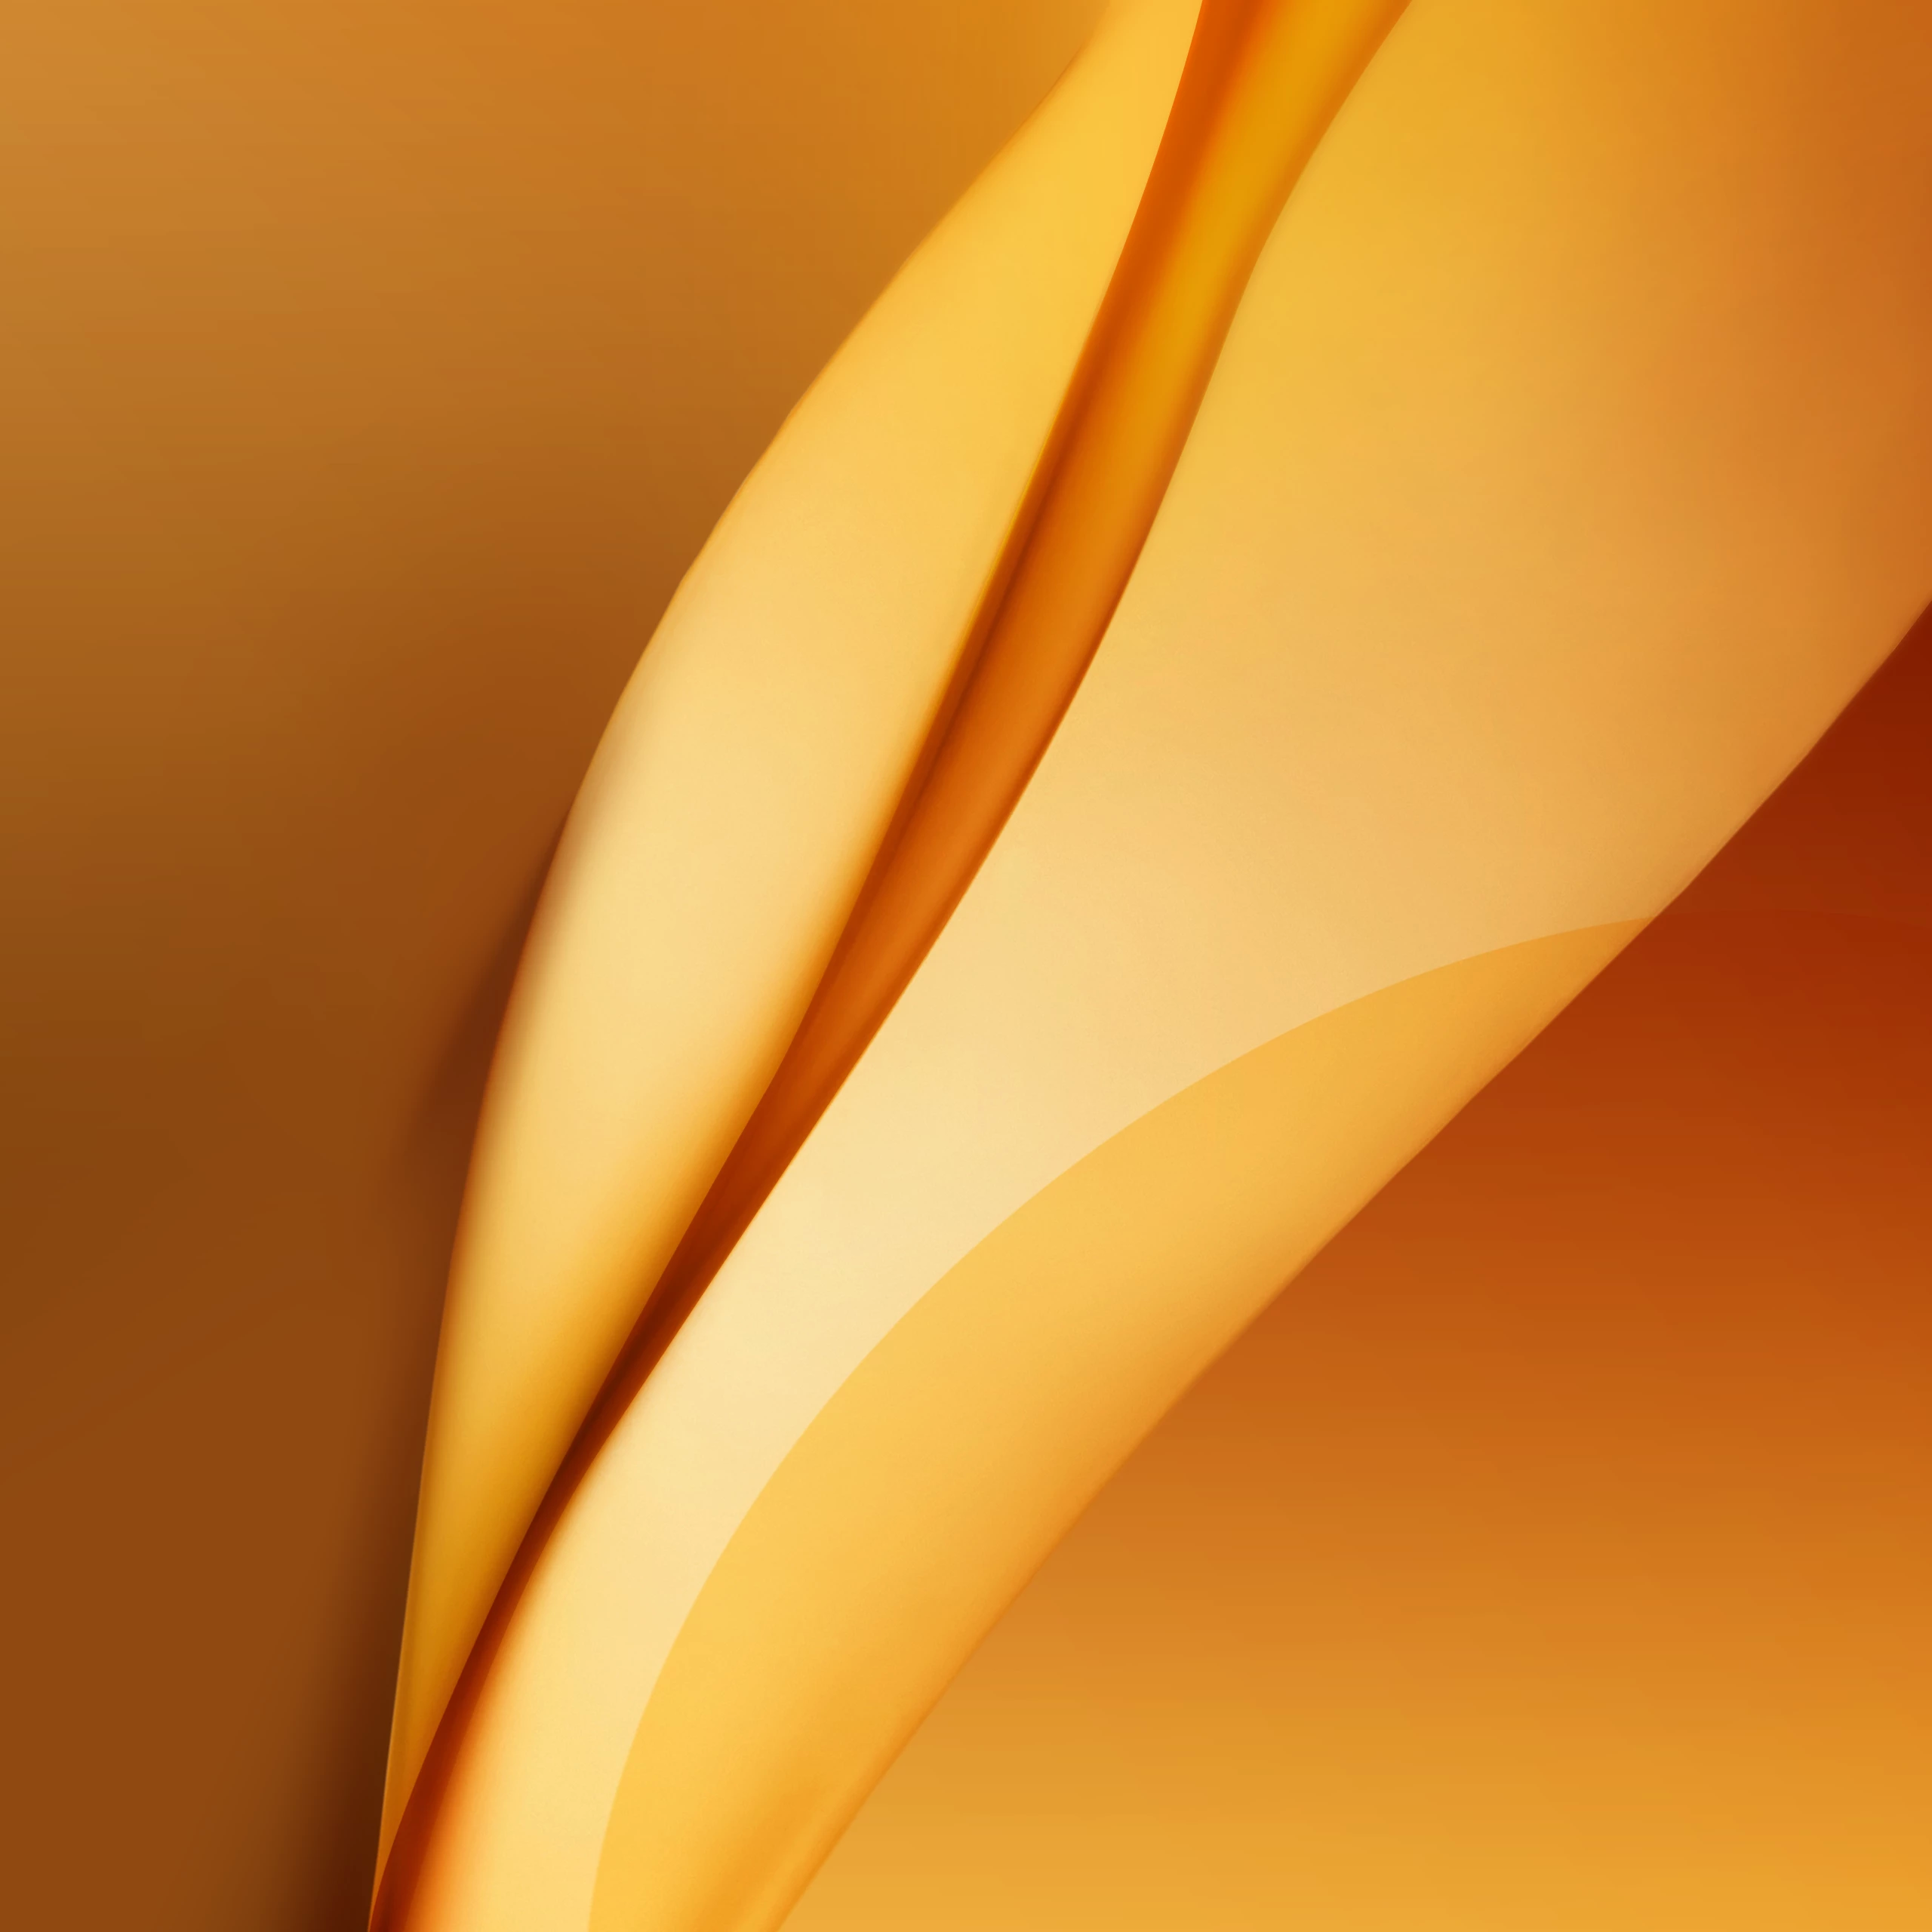 Galaxy Note 5 Wallpapers 05